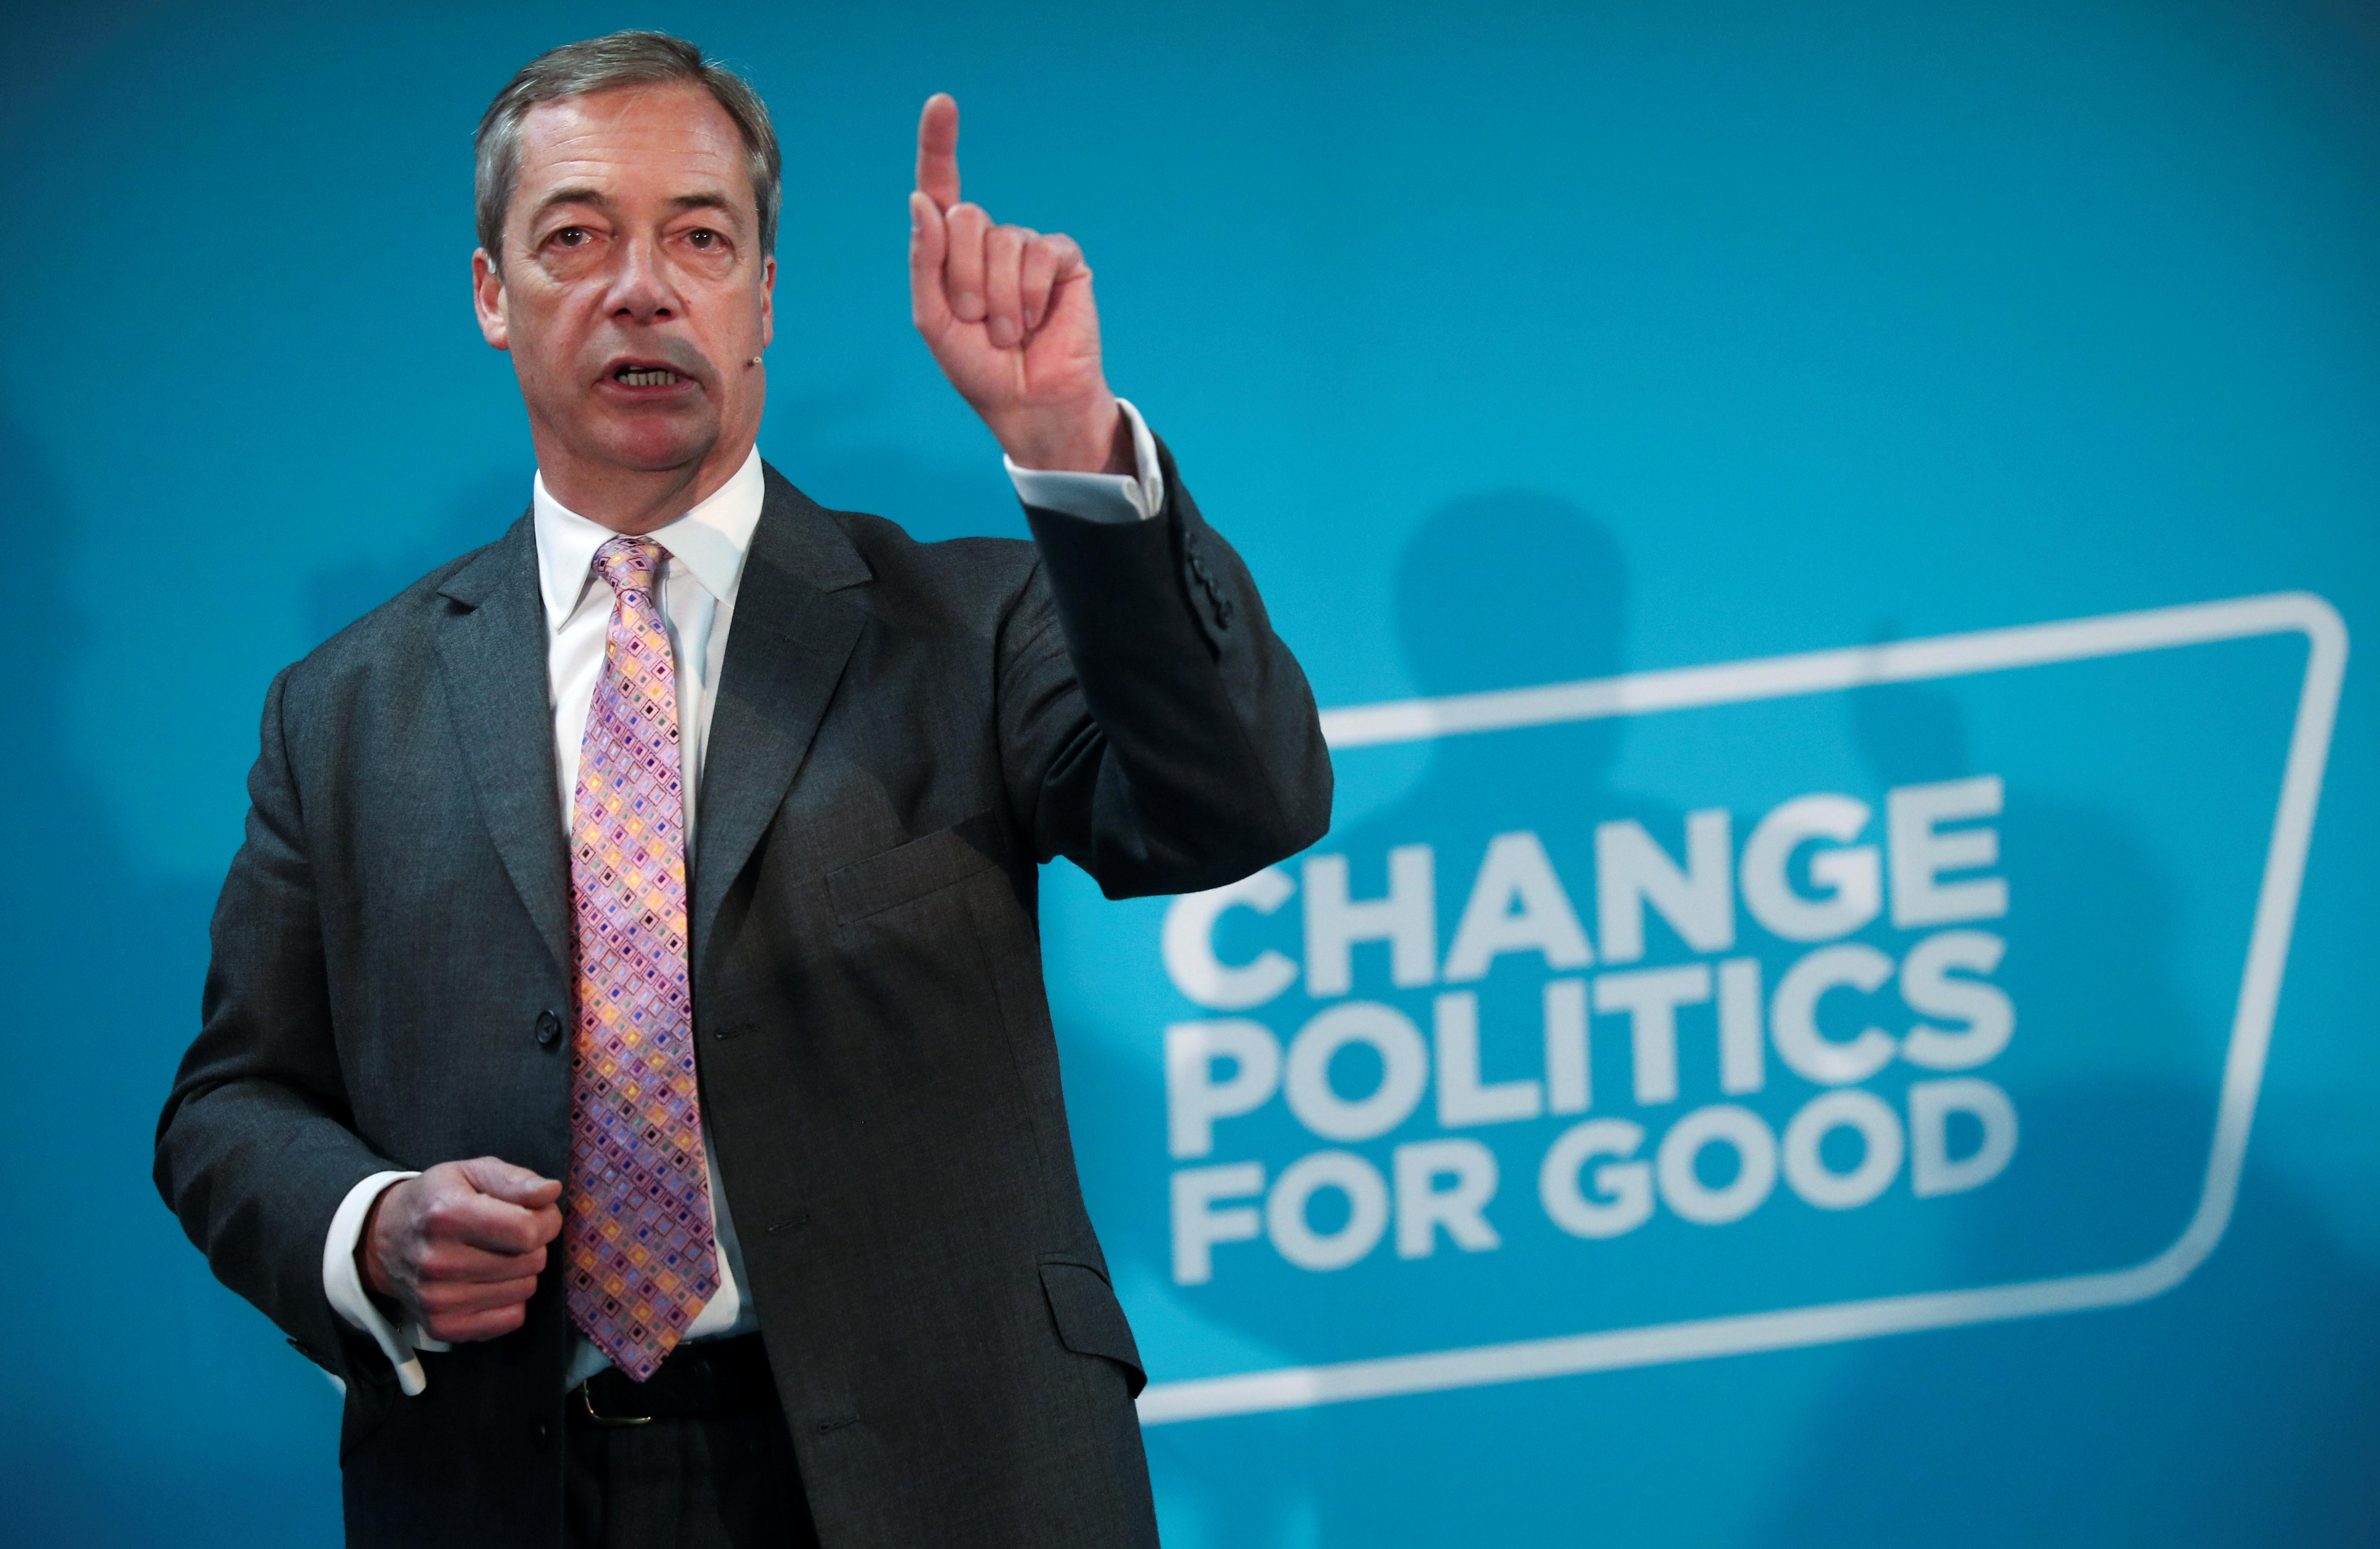 Brexit Party's Farage turns down electoral pact offer from PM...